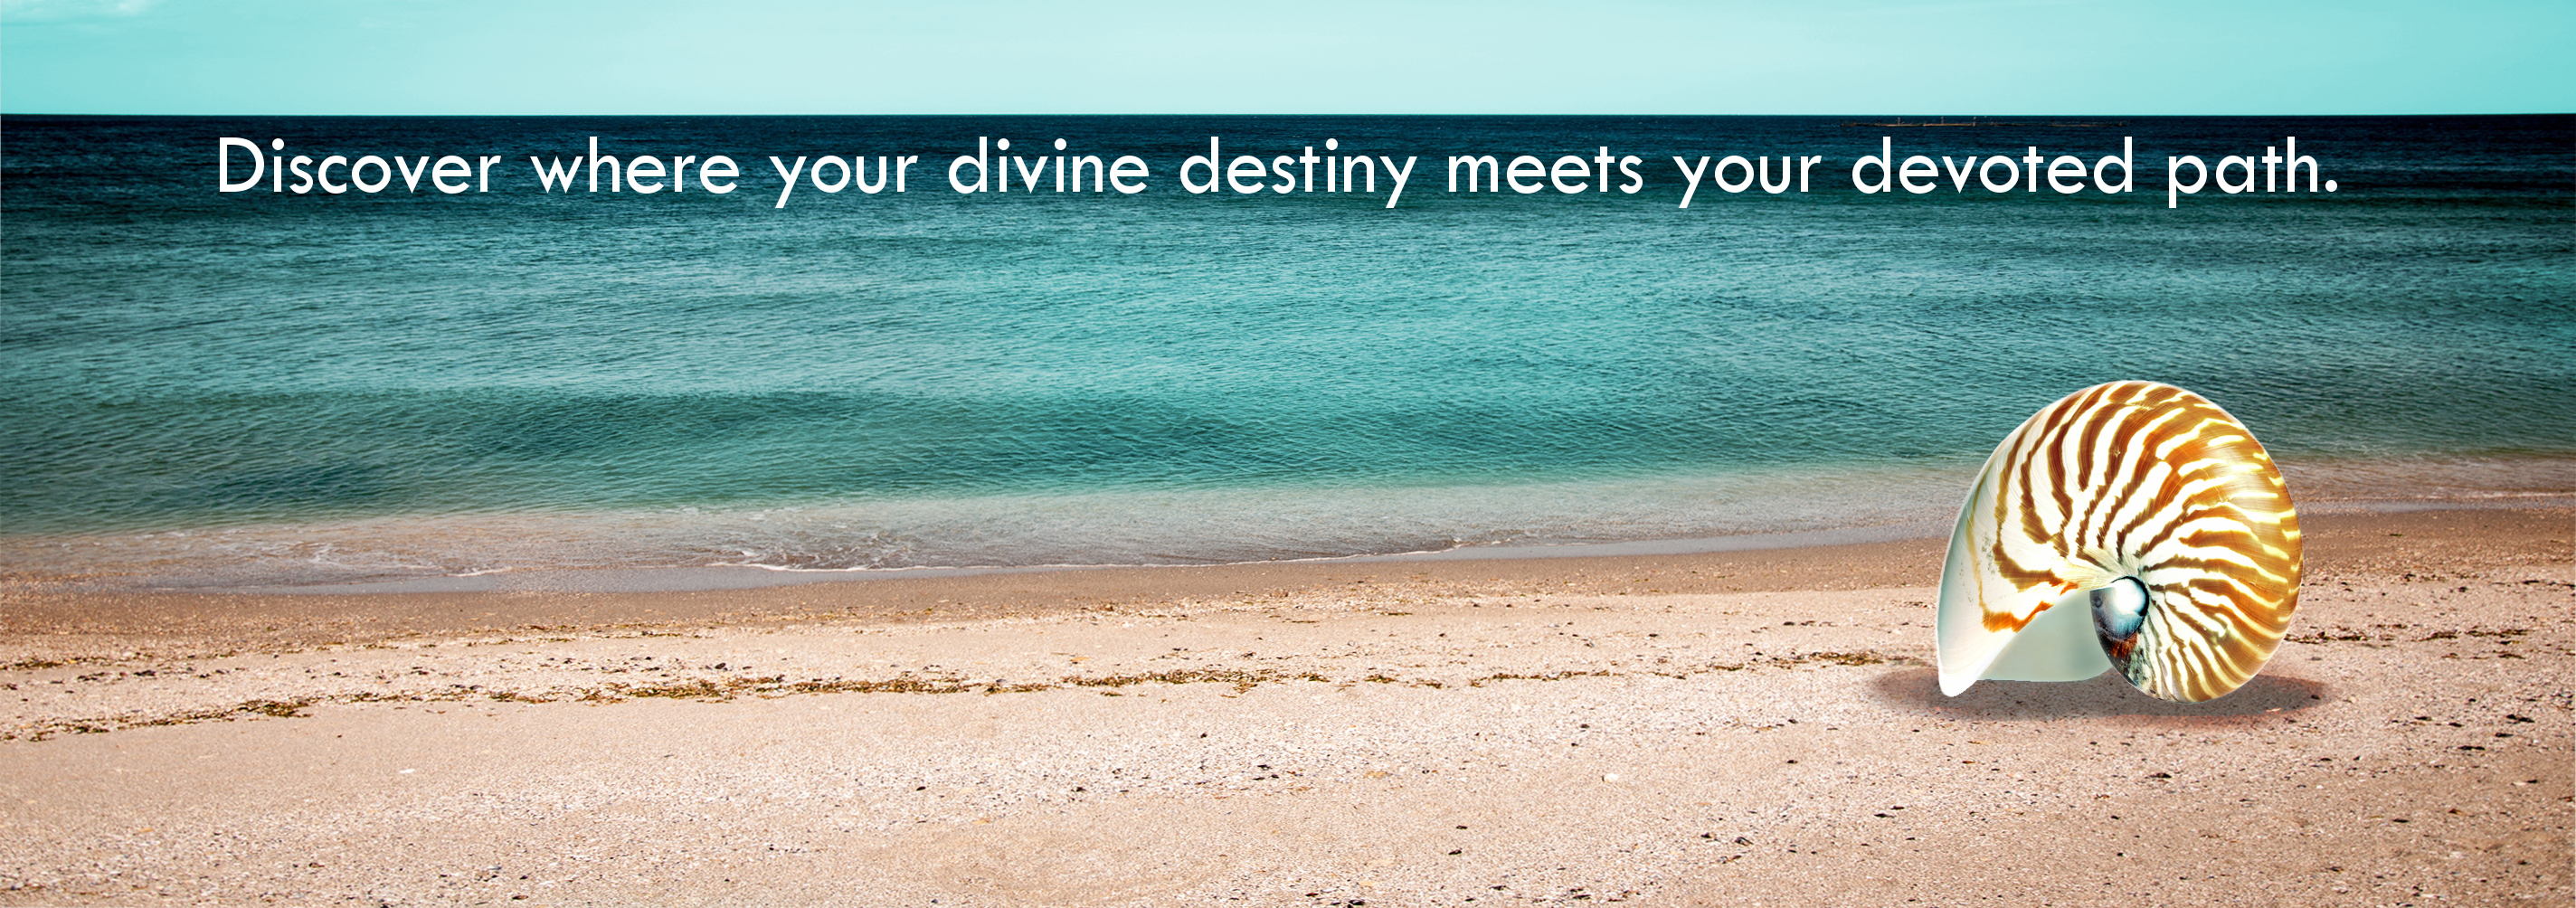 Discover where divine destiny meets devoted paths